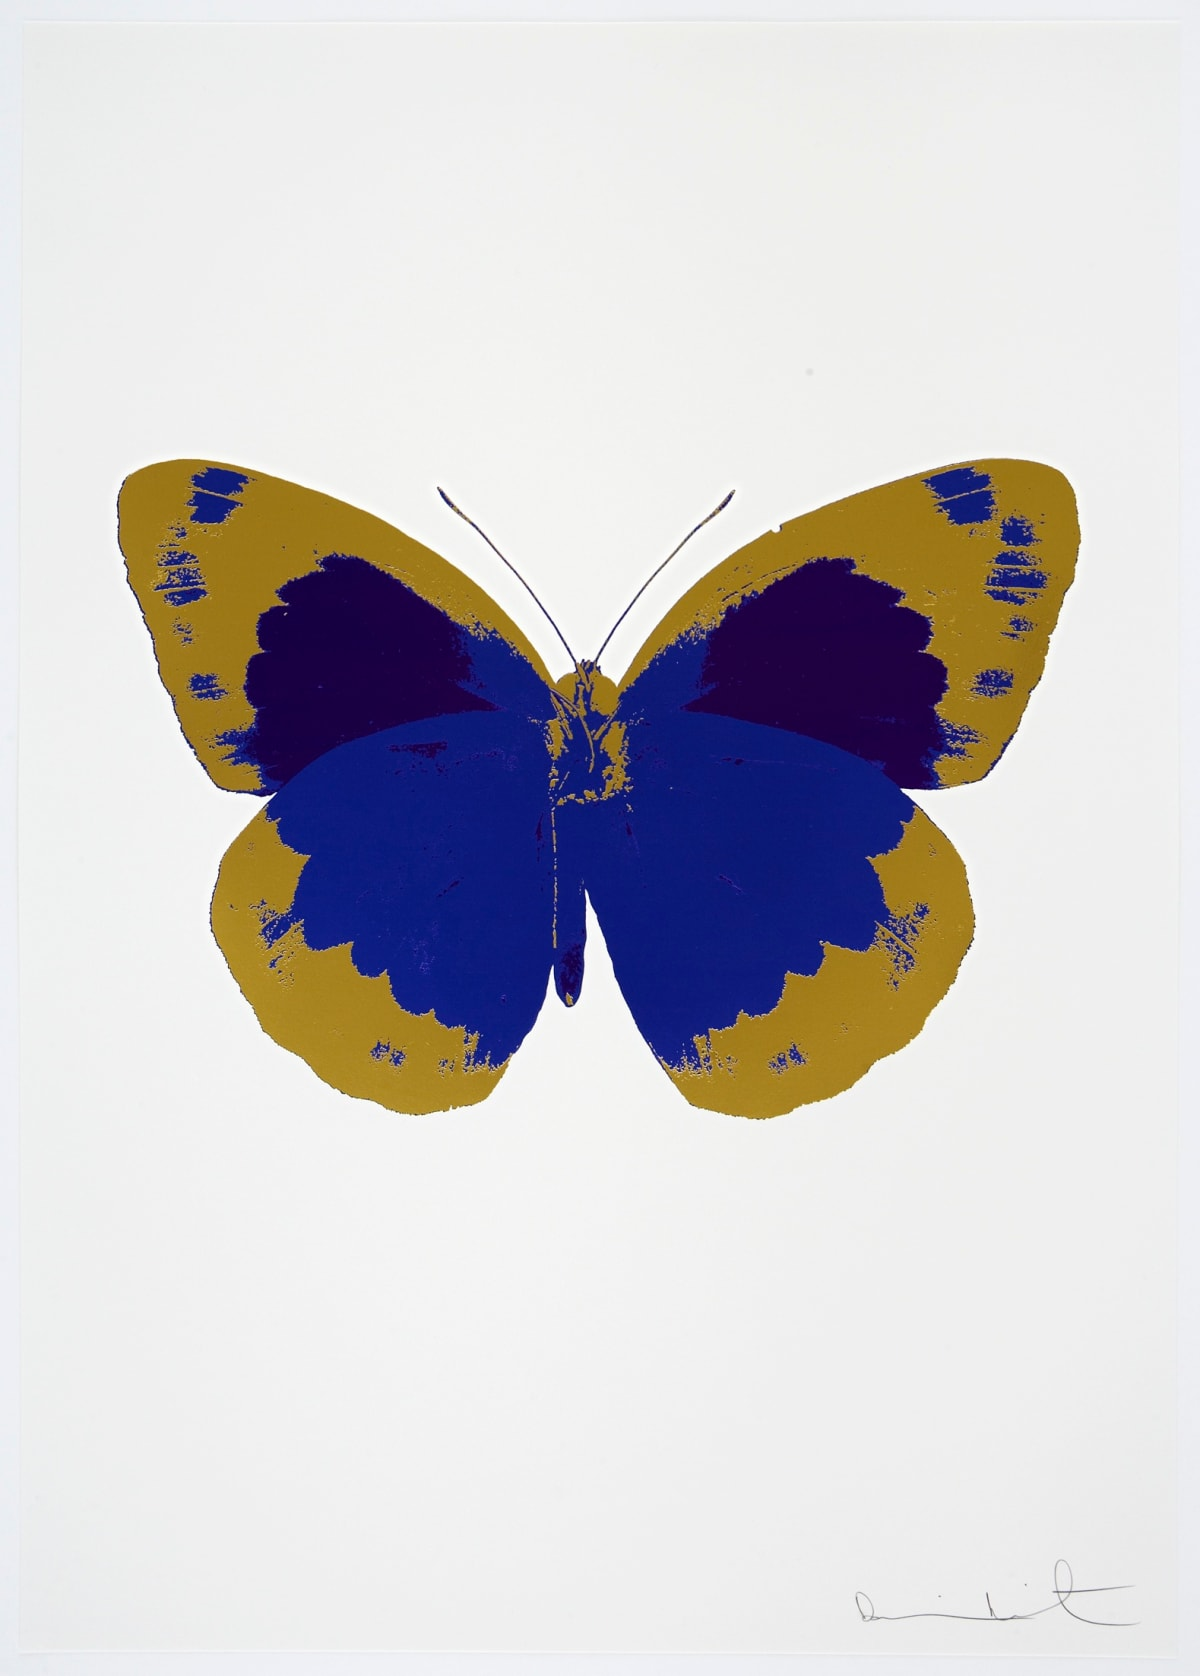 Damien Hirst The Souls II - Westminster Blue/Oriental Gold/Imperial Purple, 2010 3 colour foil block on 300gsm Arches 88 archival paper. Signed and numbered. Published by Paul Stolper and Other Criteria 72 x 51cm OC7871 / 658-54 Edition of 15